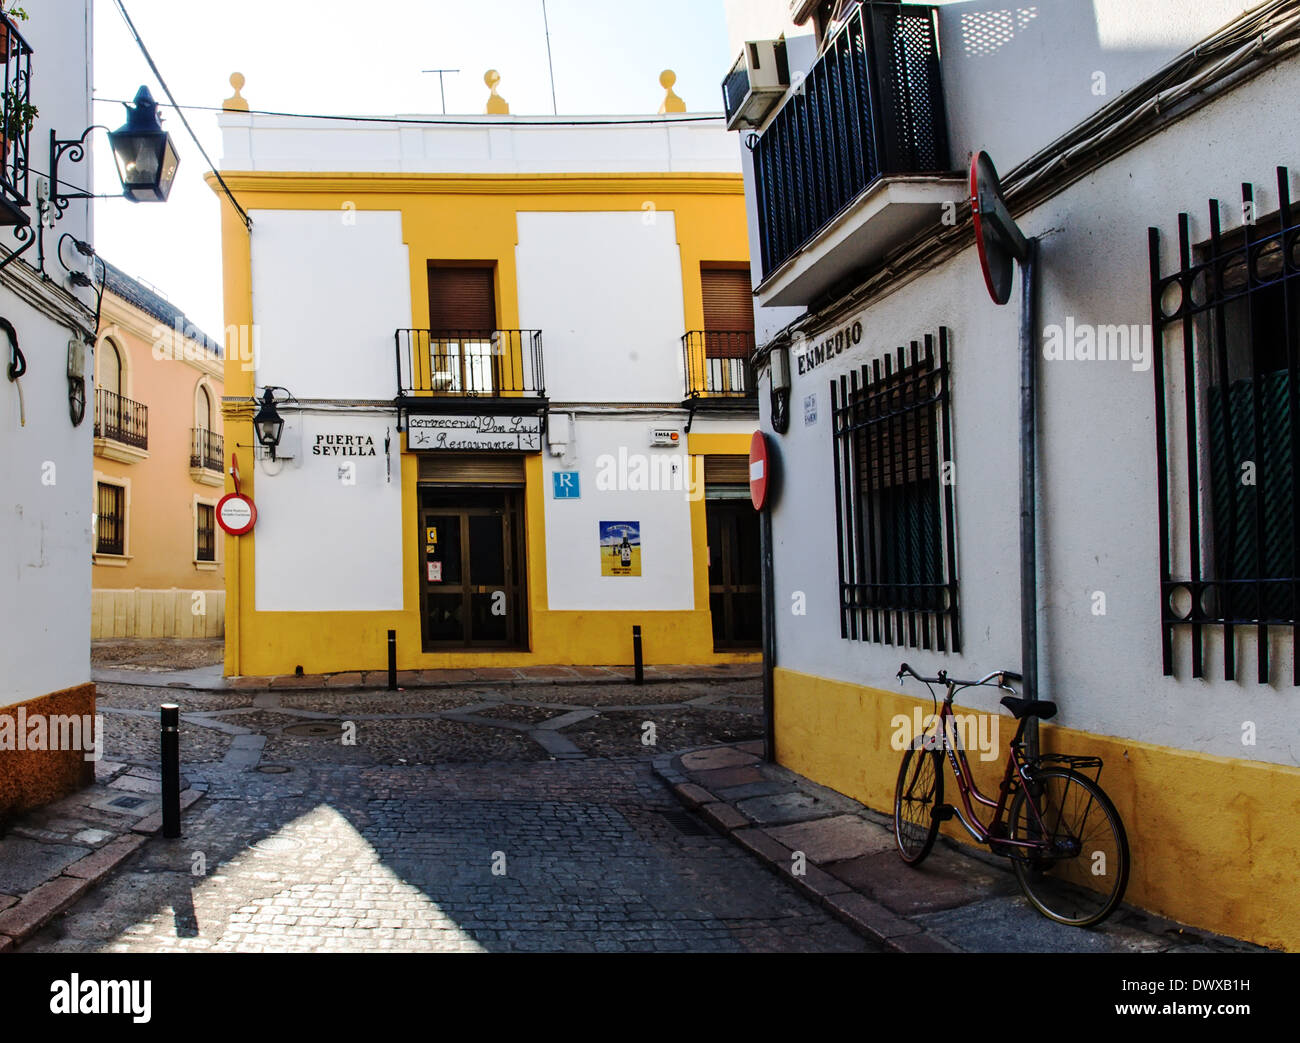 Deserted cobbled street in Spain with yellow and white buildings and bicycle - Stock Image